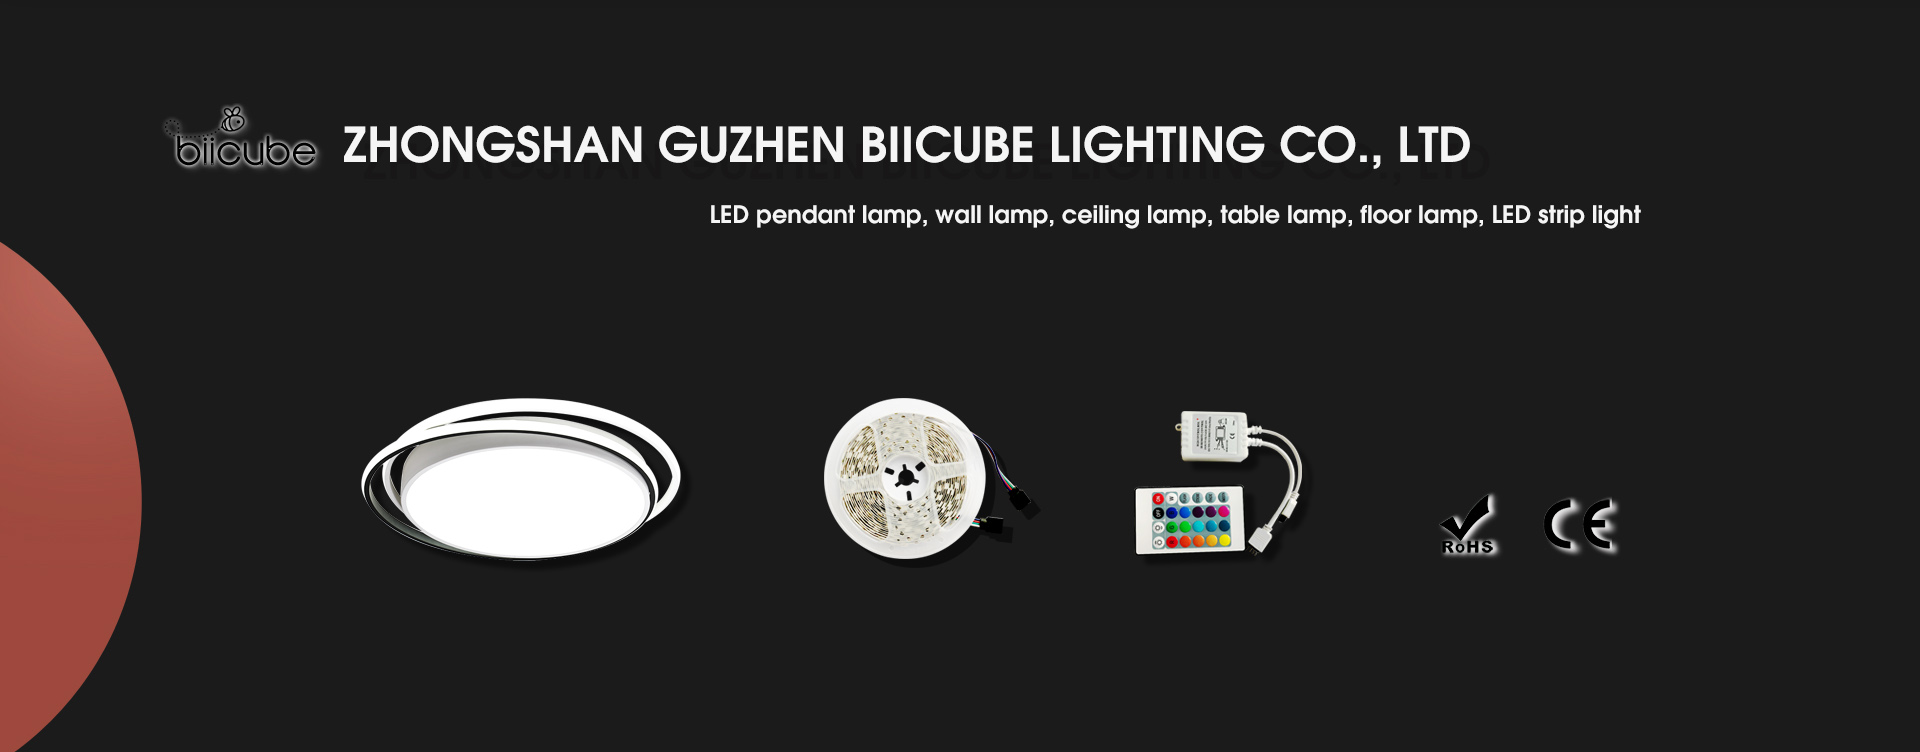 Zhongshan Xinmu Lighting Co., Ltd Main Image